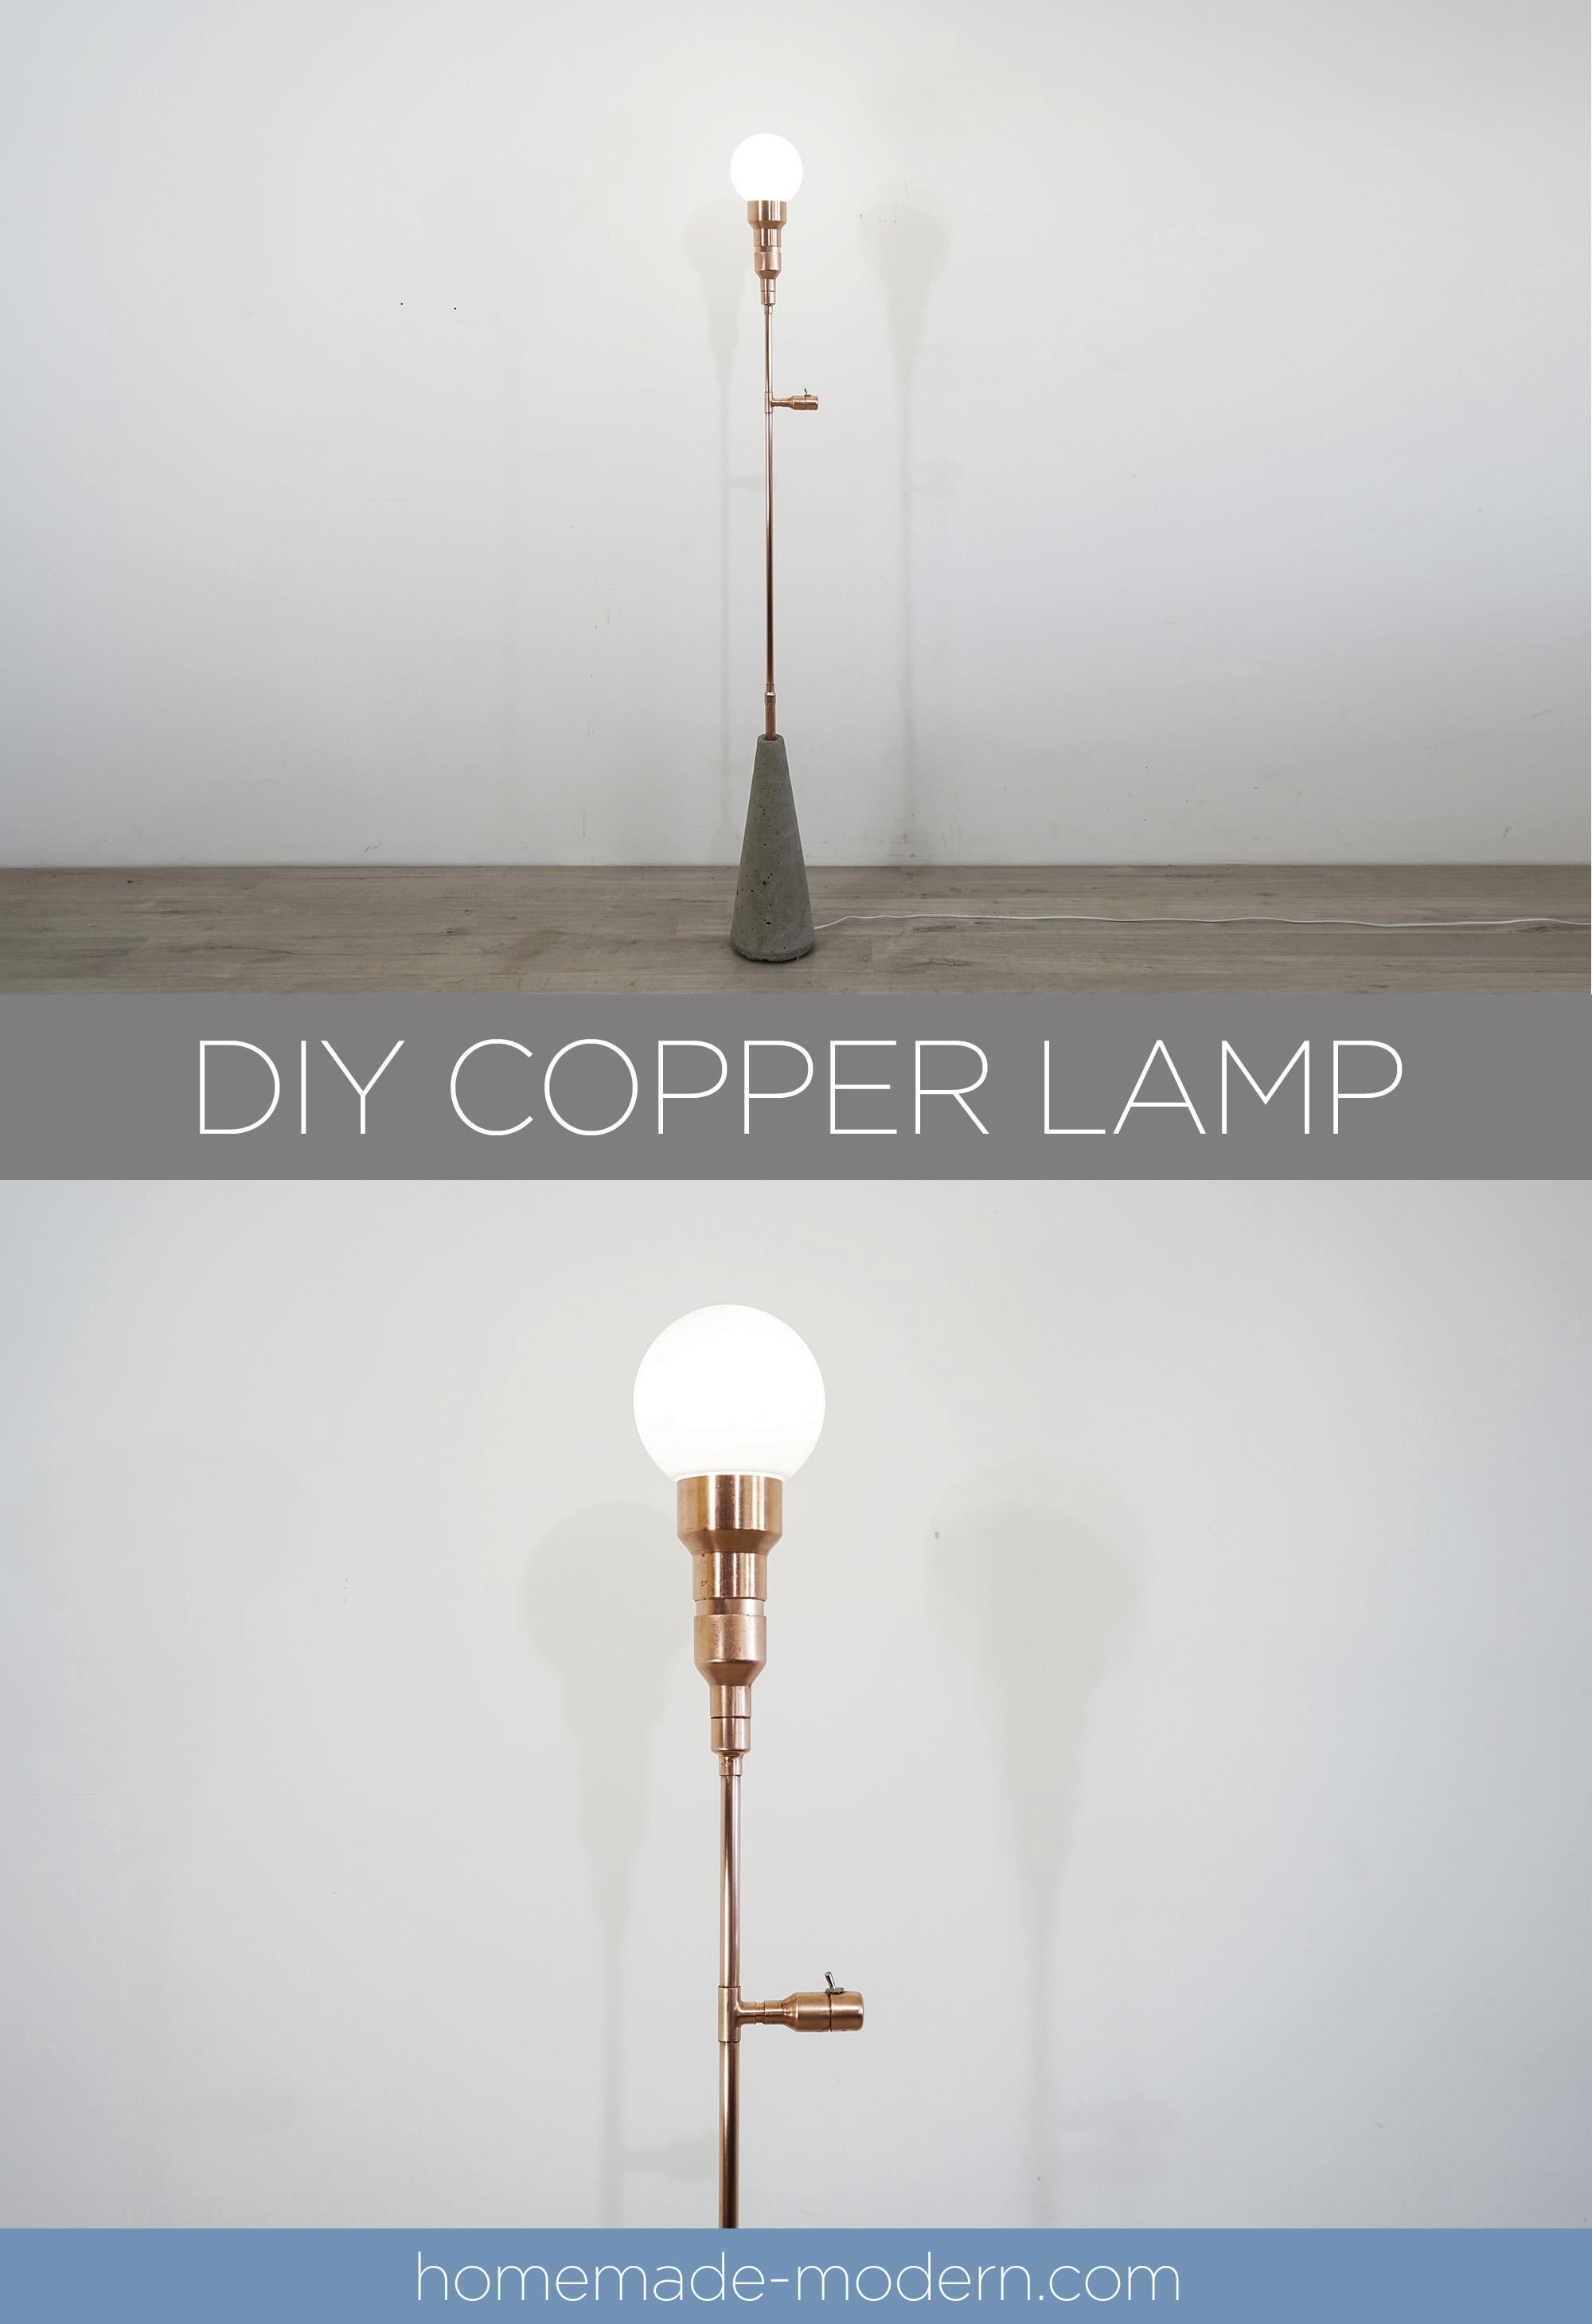 This DIY copper lamp was made out of copper pipes from Home Depot. For more information go to HomeMade-Modern.com